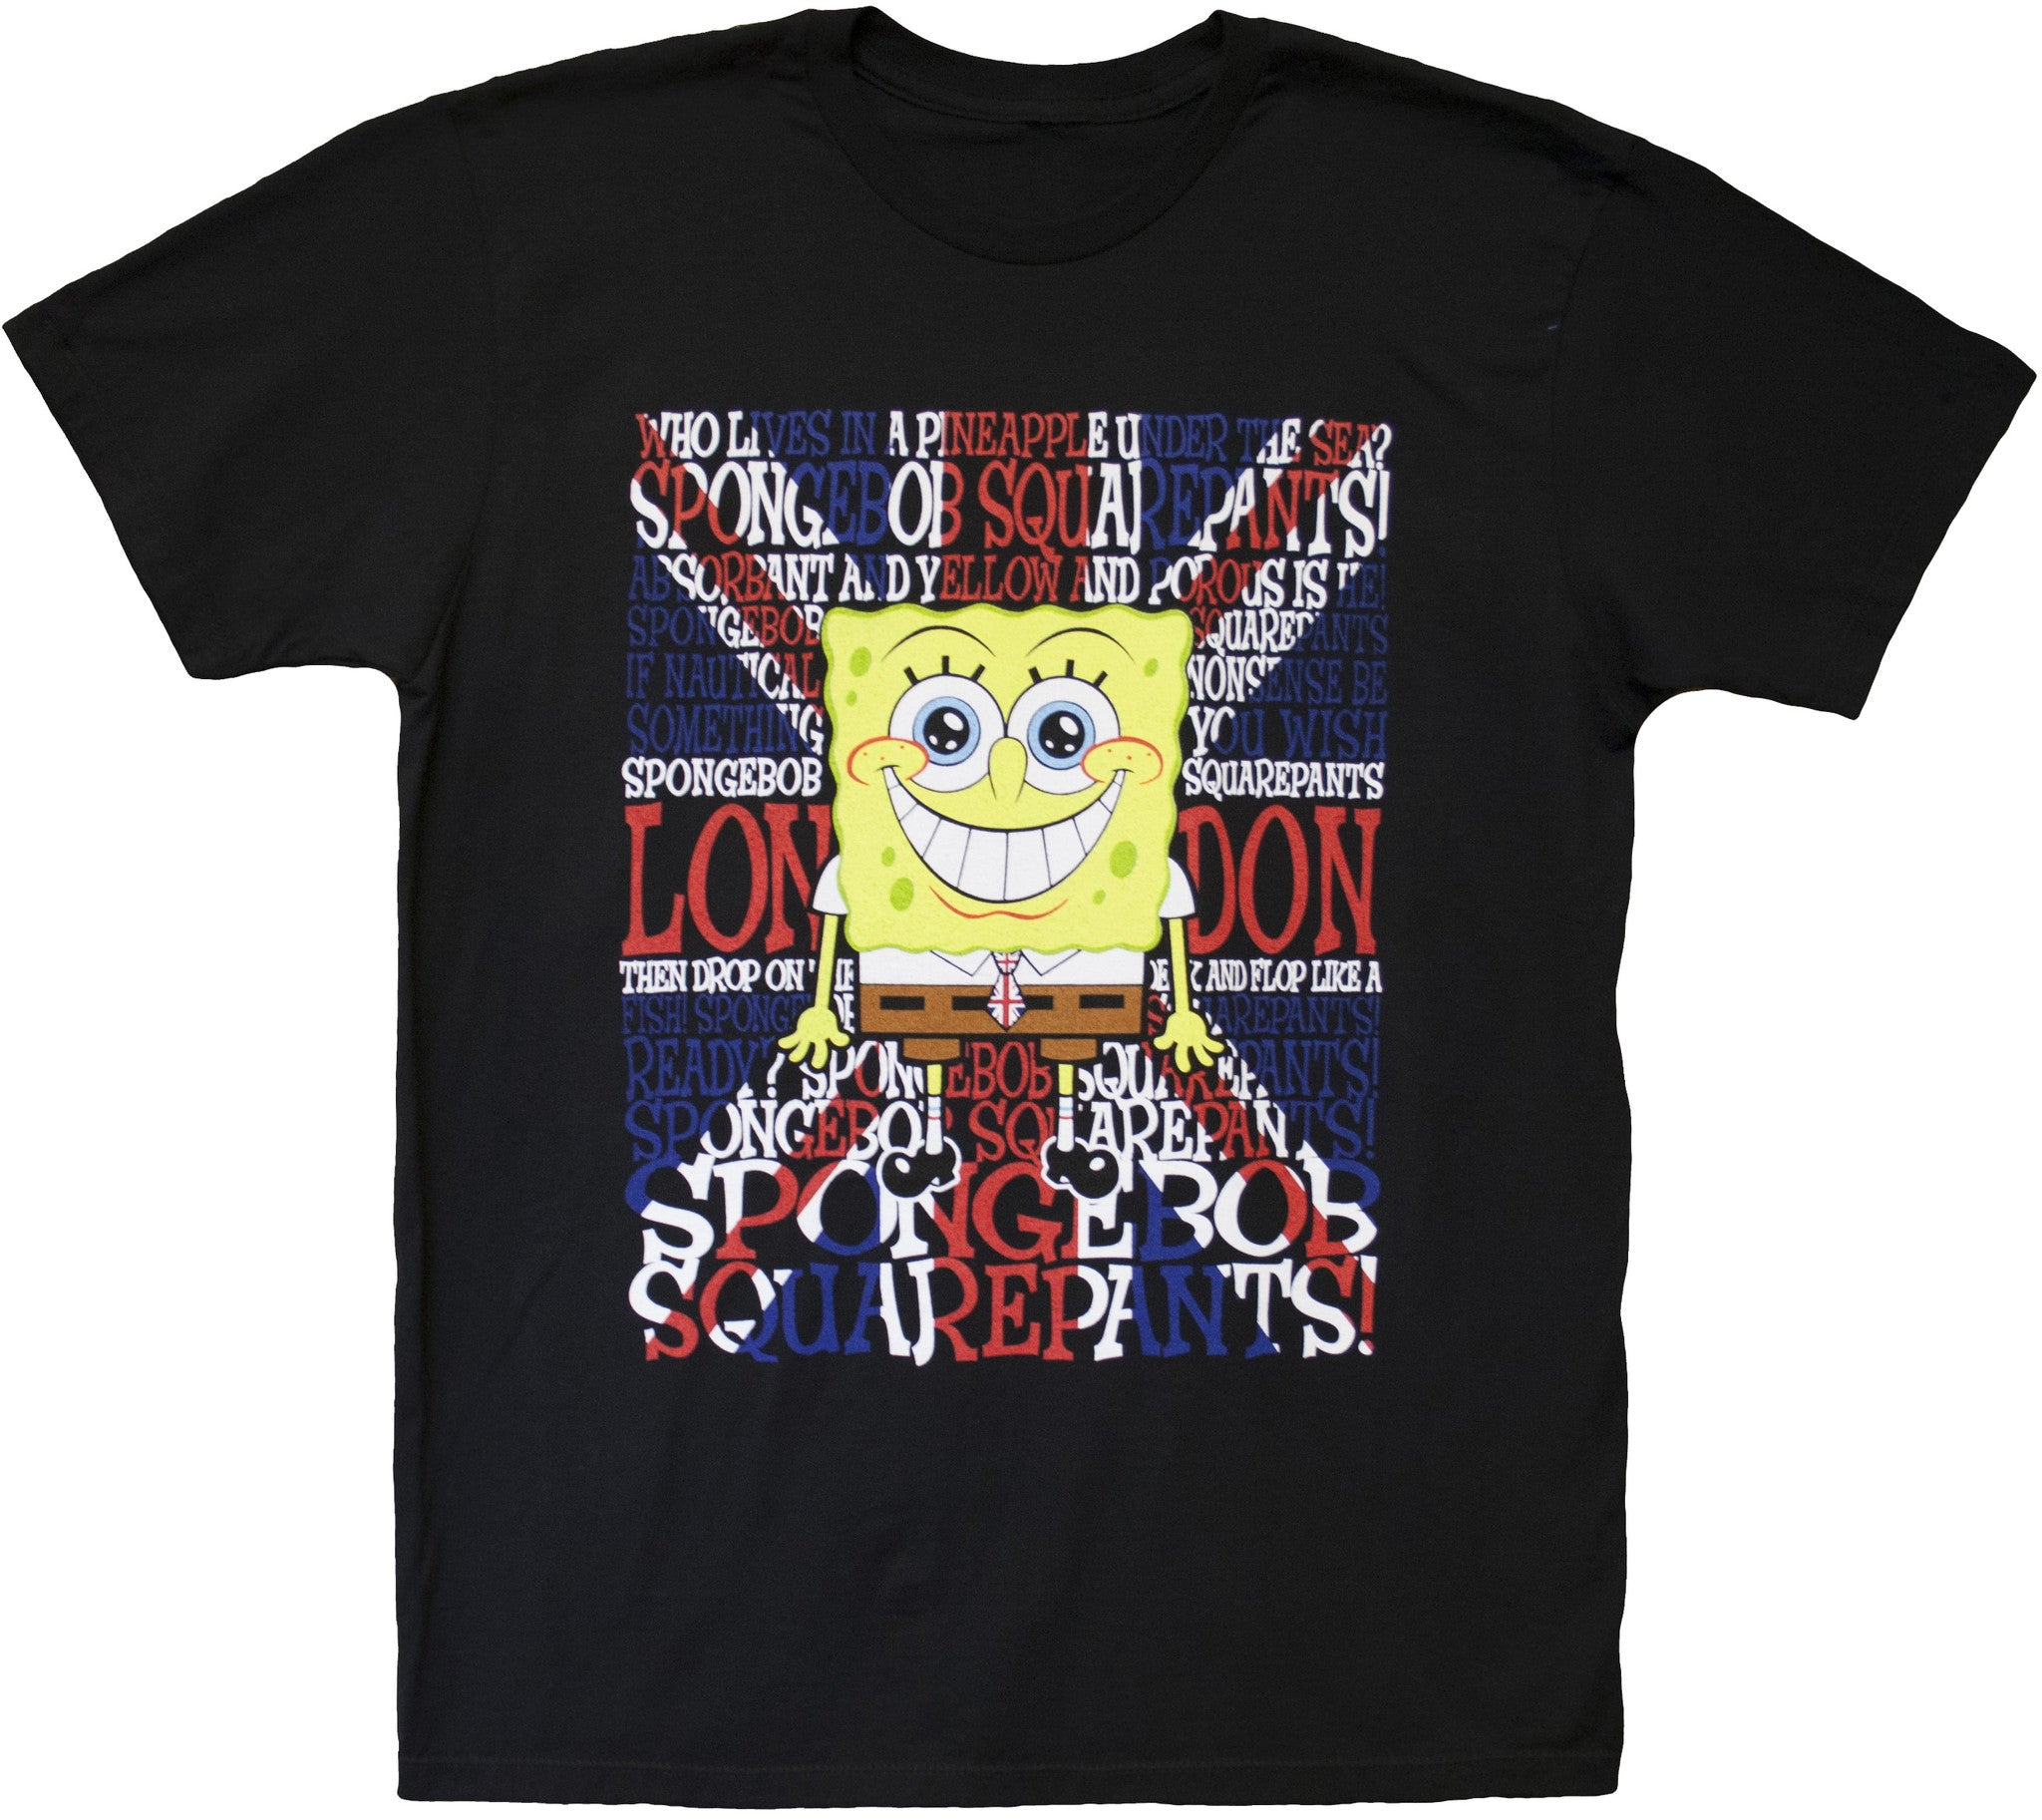 "SpongeBob SquarePants ""Union Jack"" Tee - Mens"